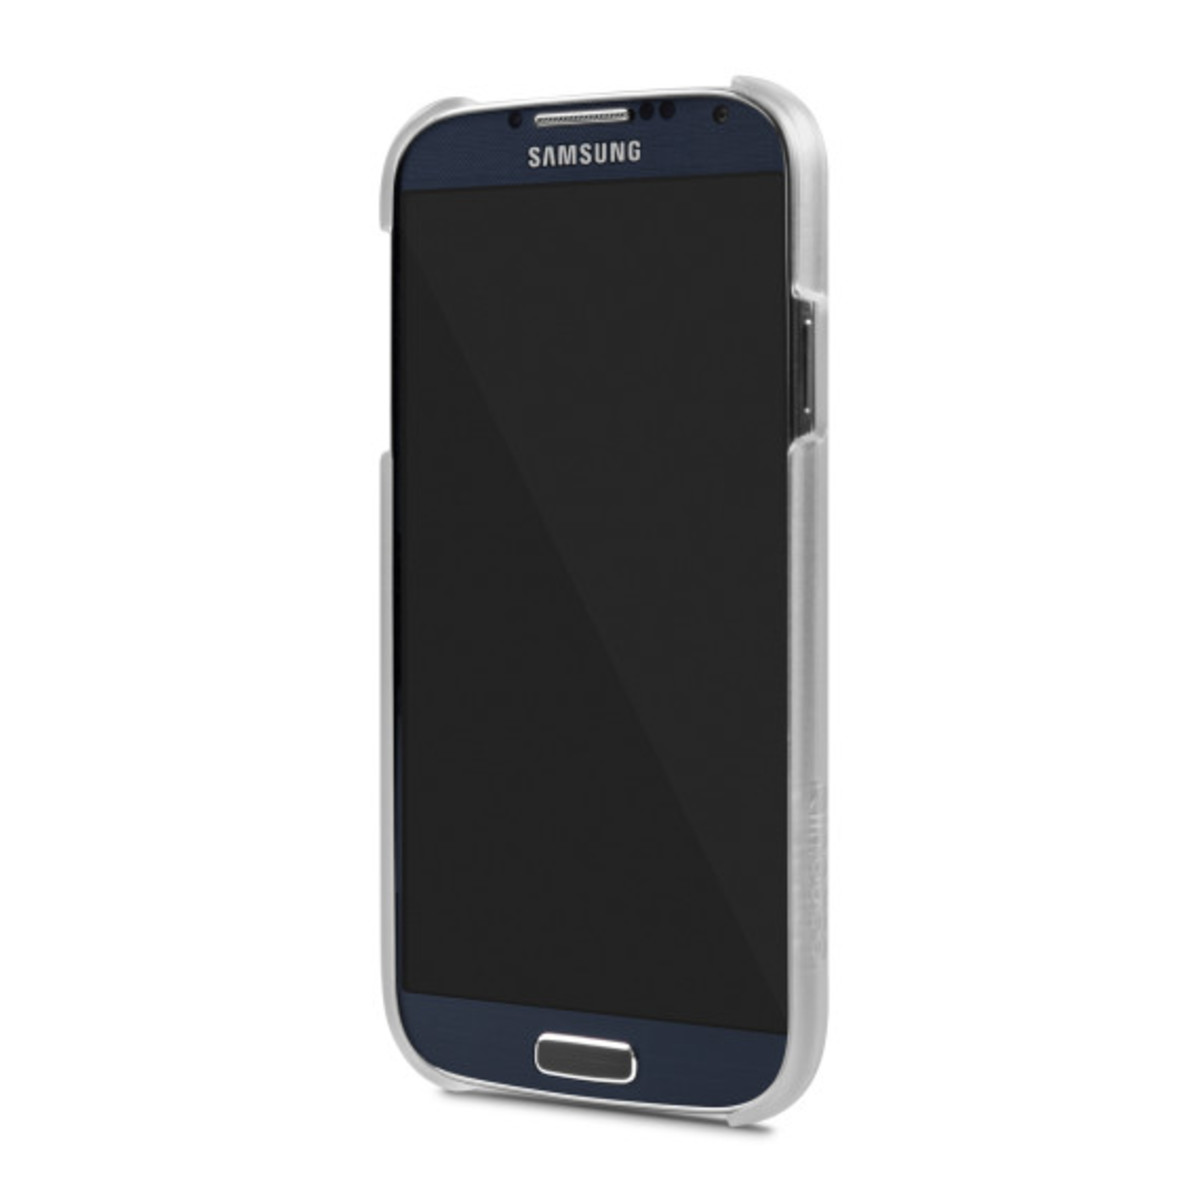 incase-samsung-galaxy-s4-snap-clear-3